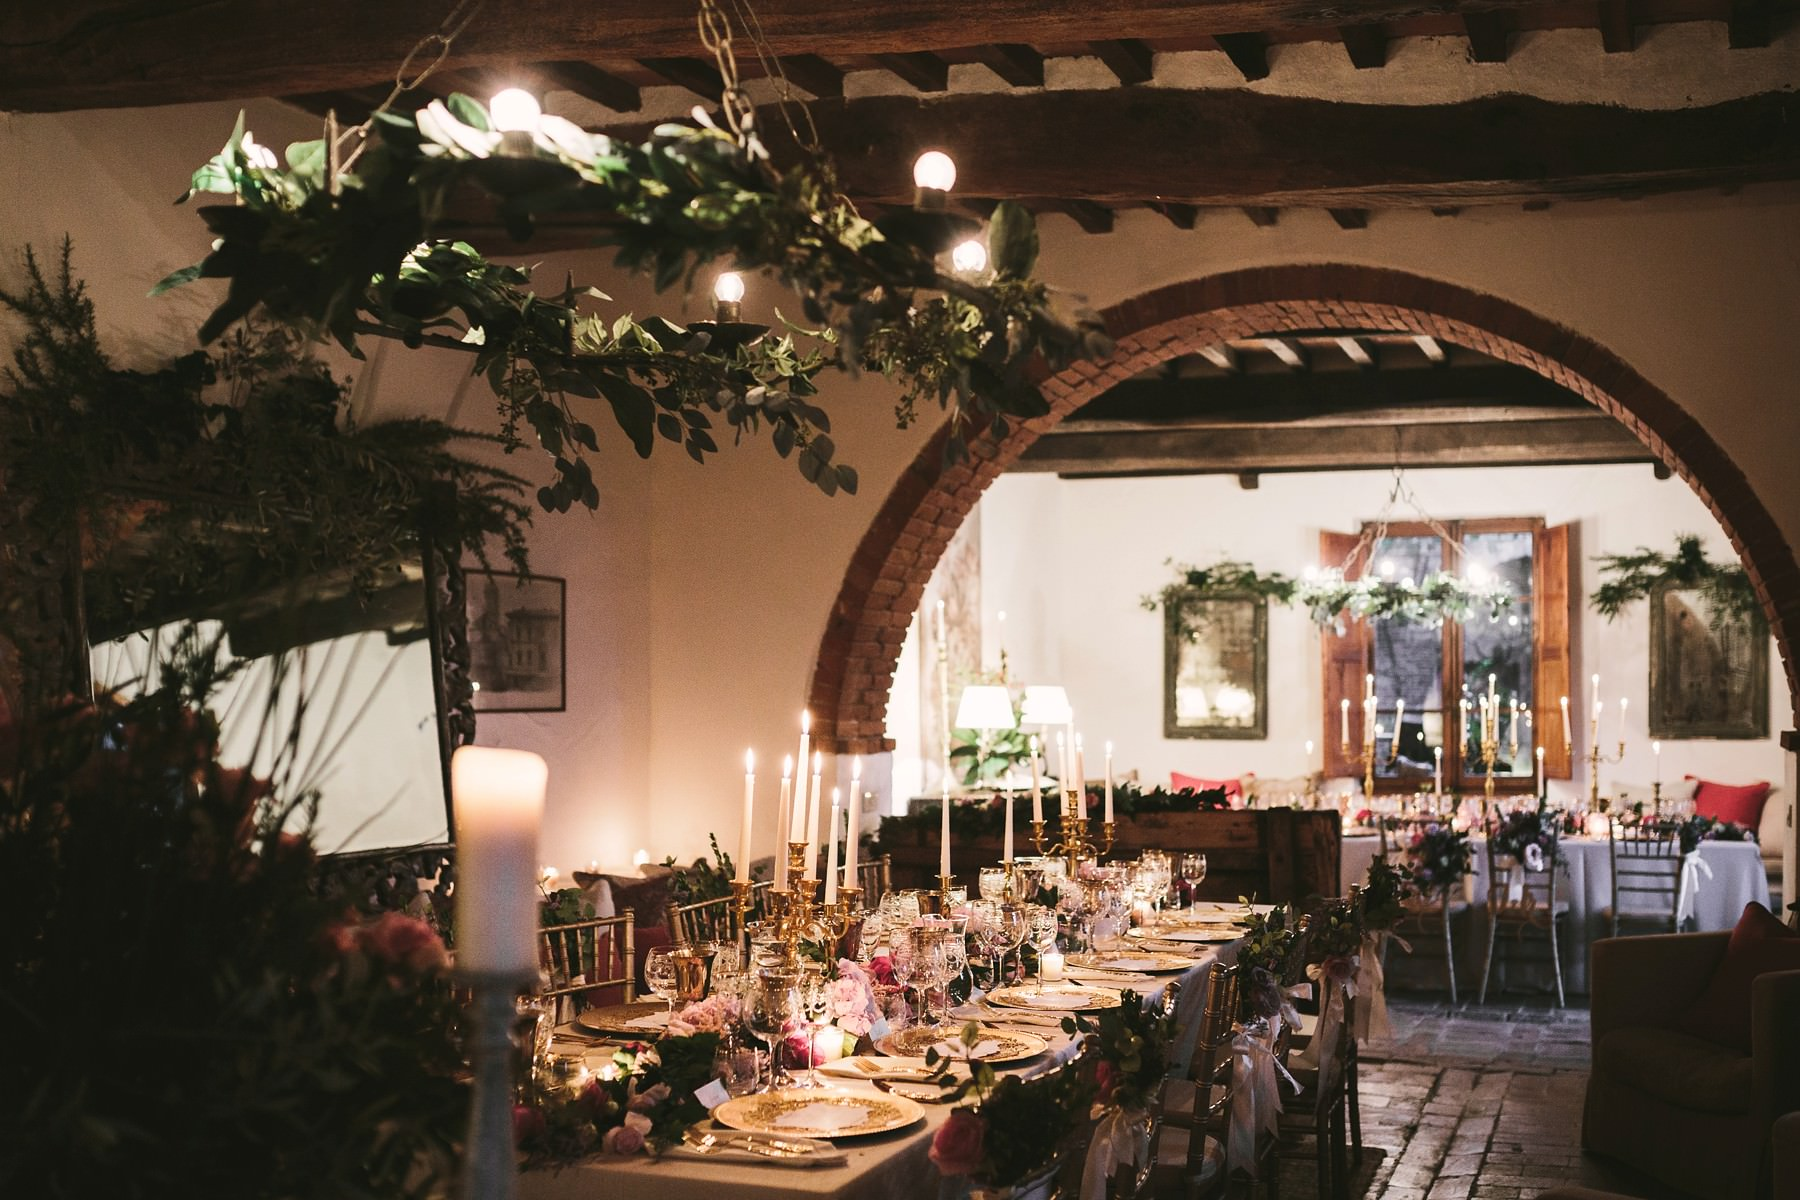 Very intimate and elegant dinner table decor into the farmhouse La Fornace